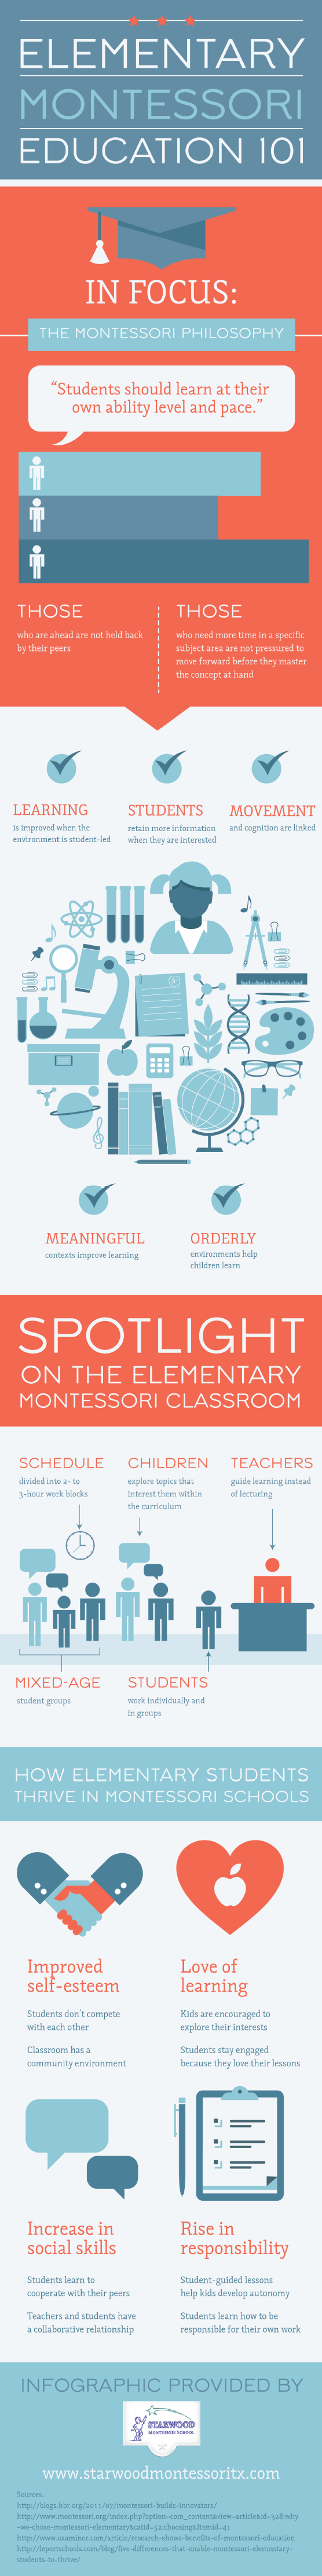 An infographic that introduces the montessori education philosophy and approach